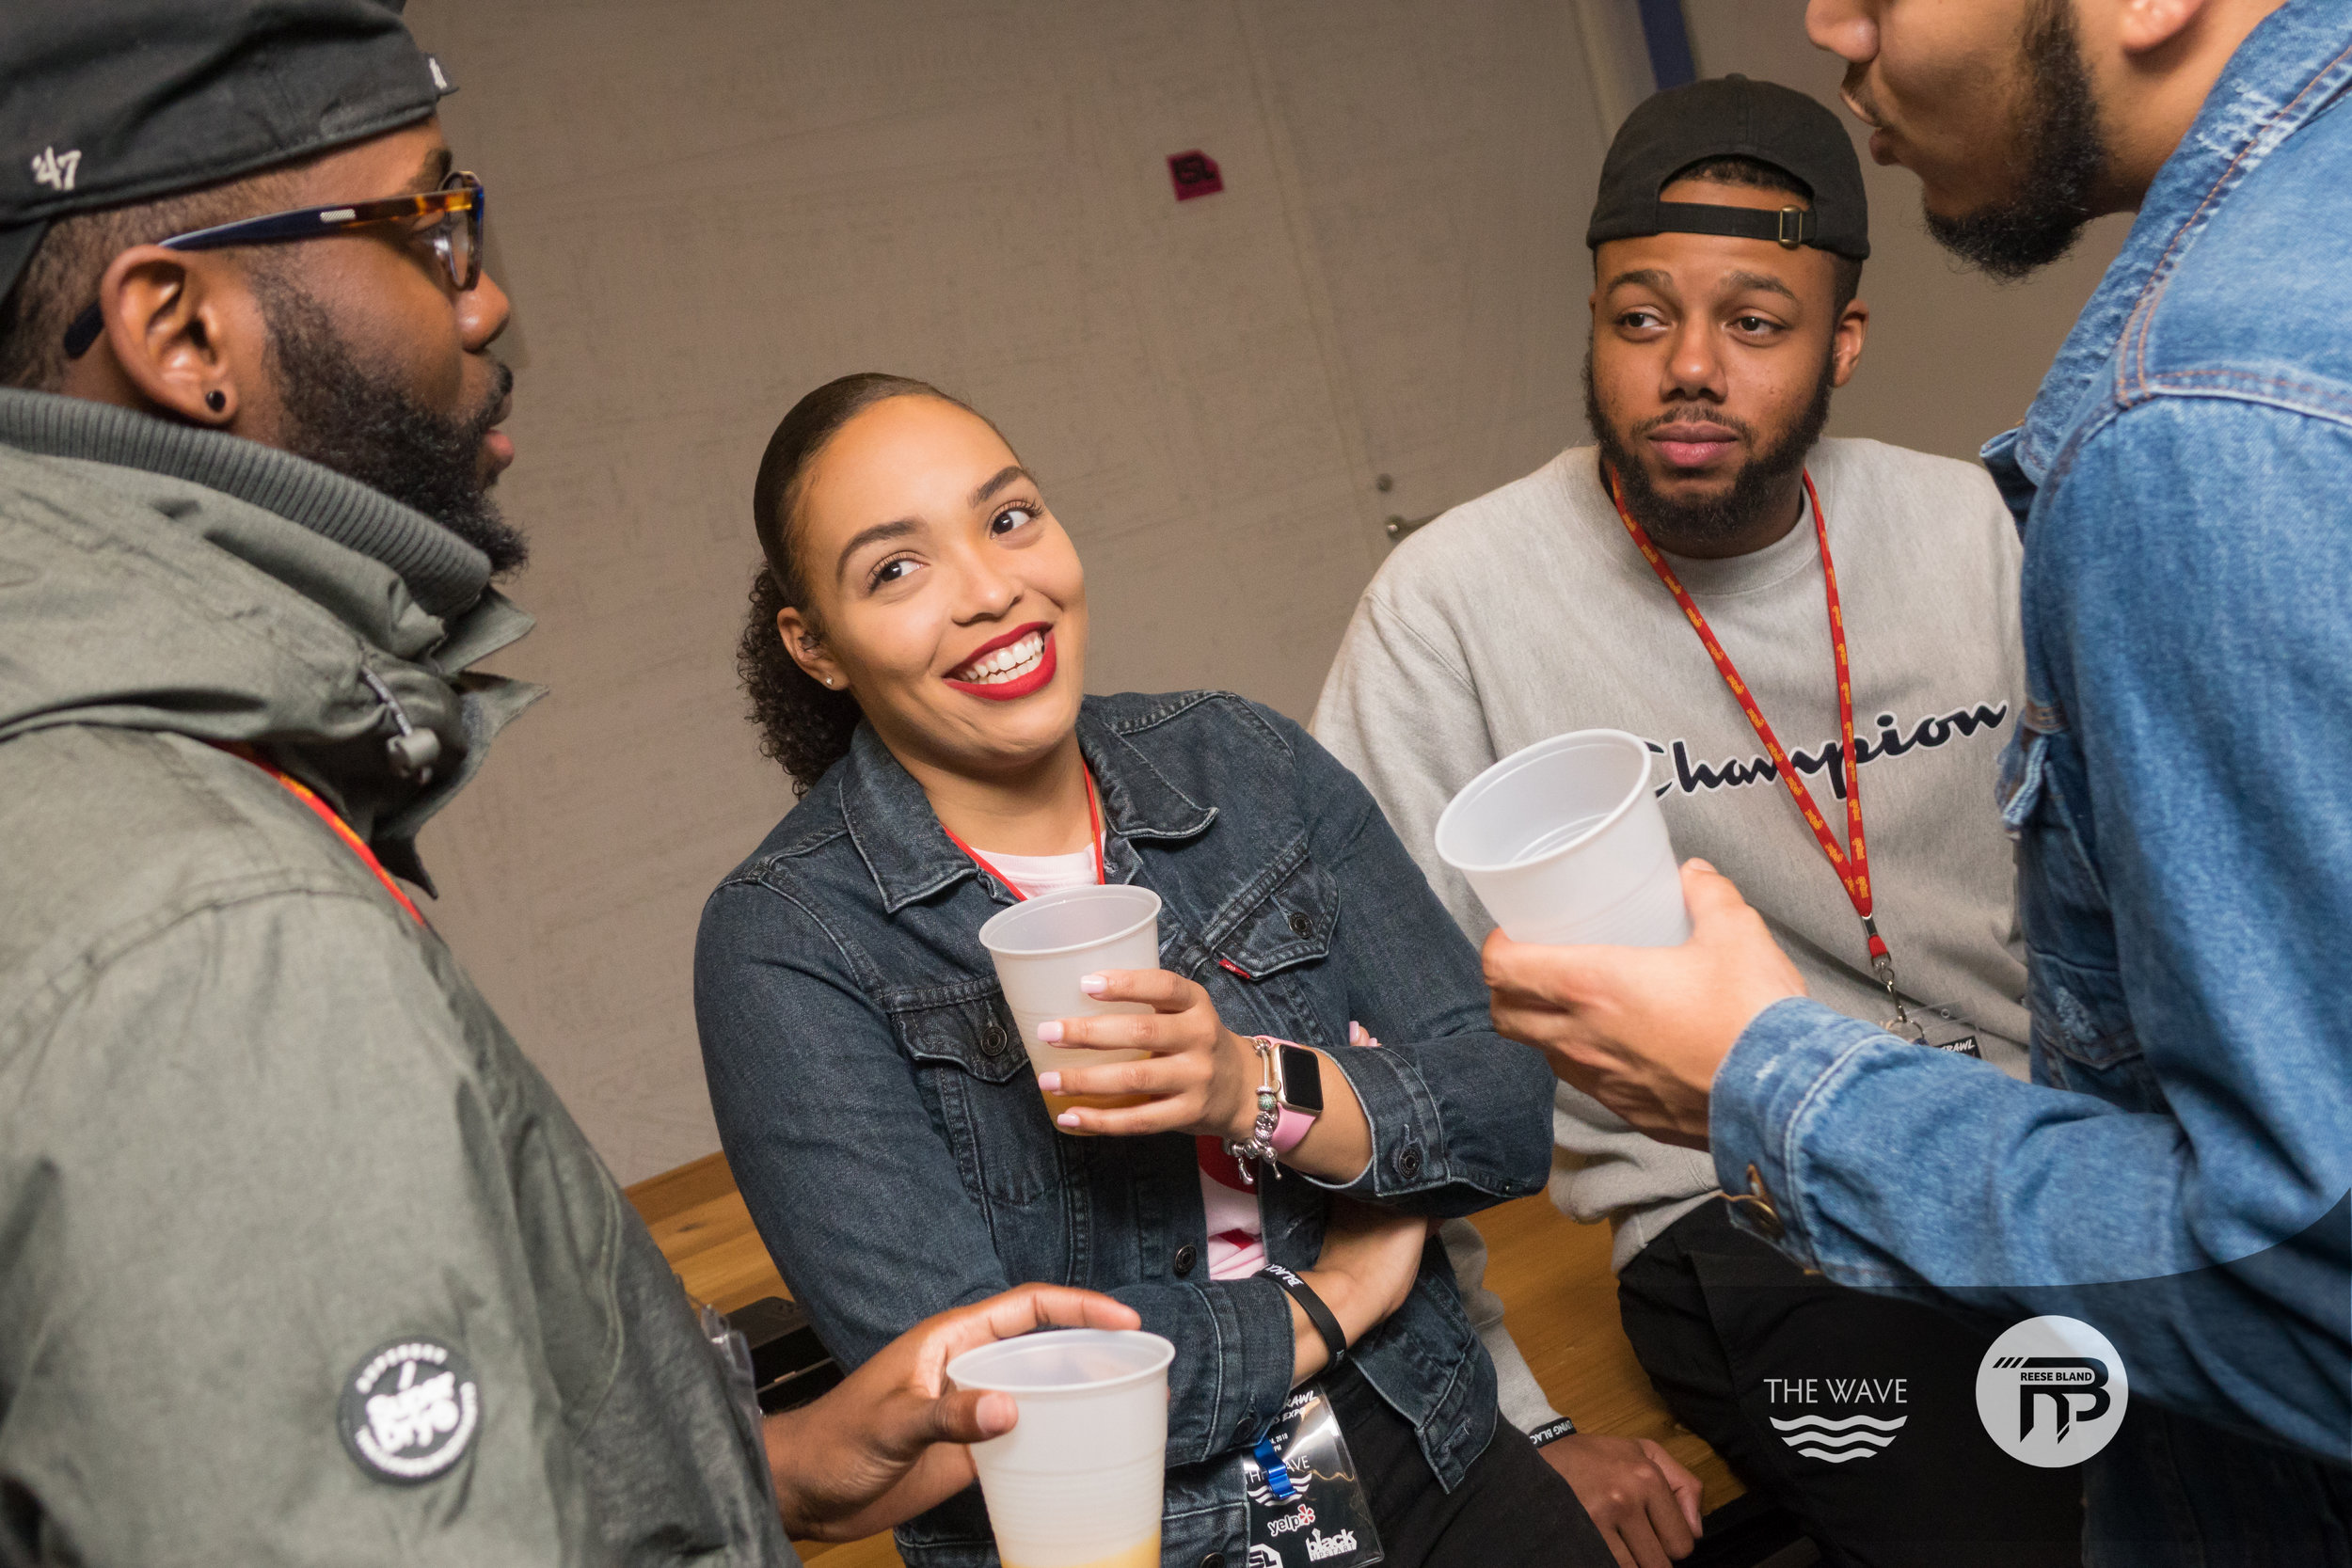 WaveDC-BlackBarCrawl-2-2018-06463.jpg